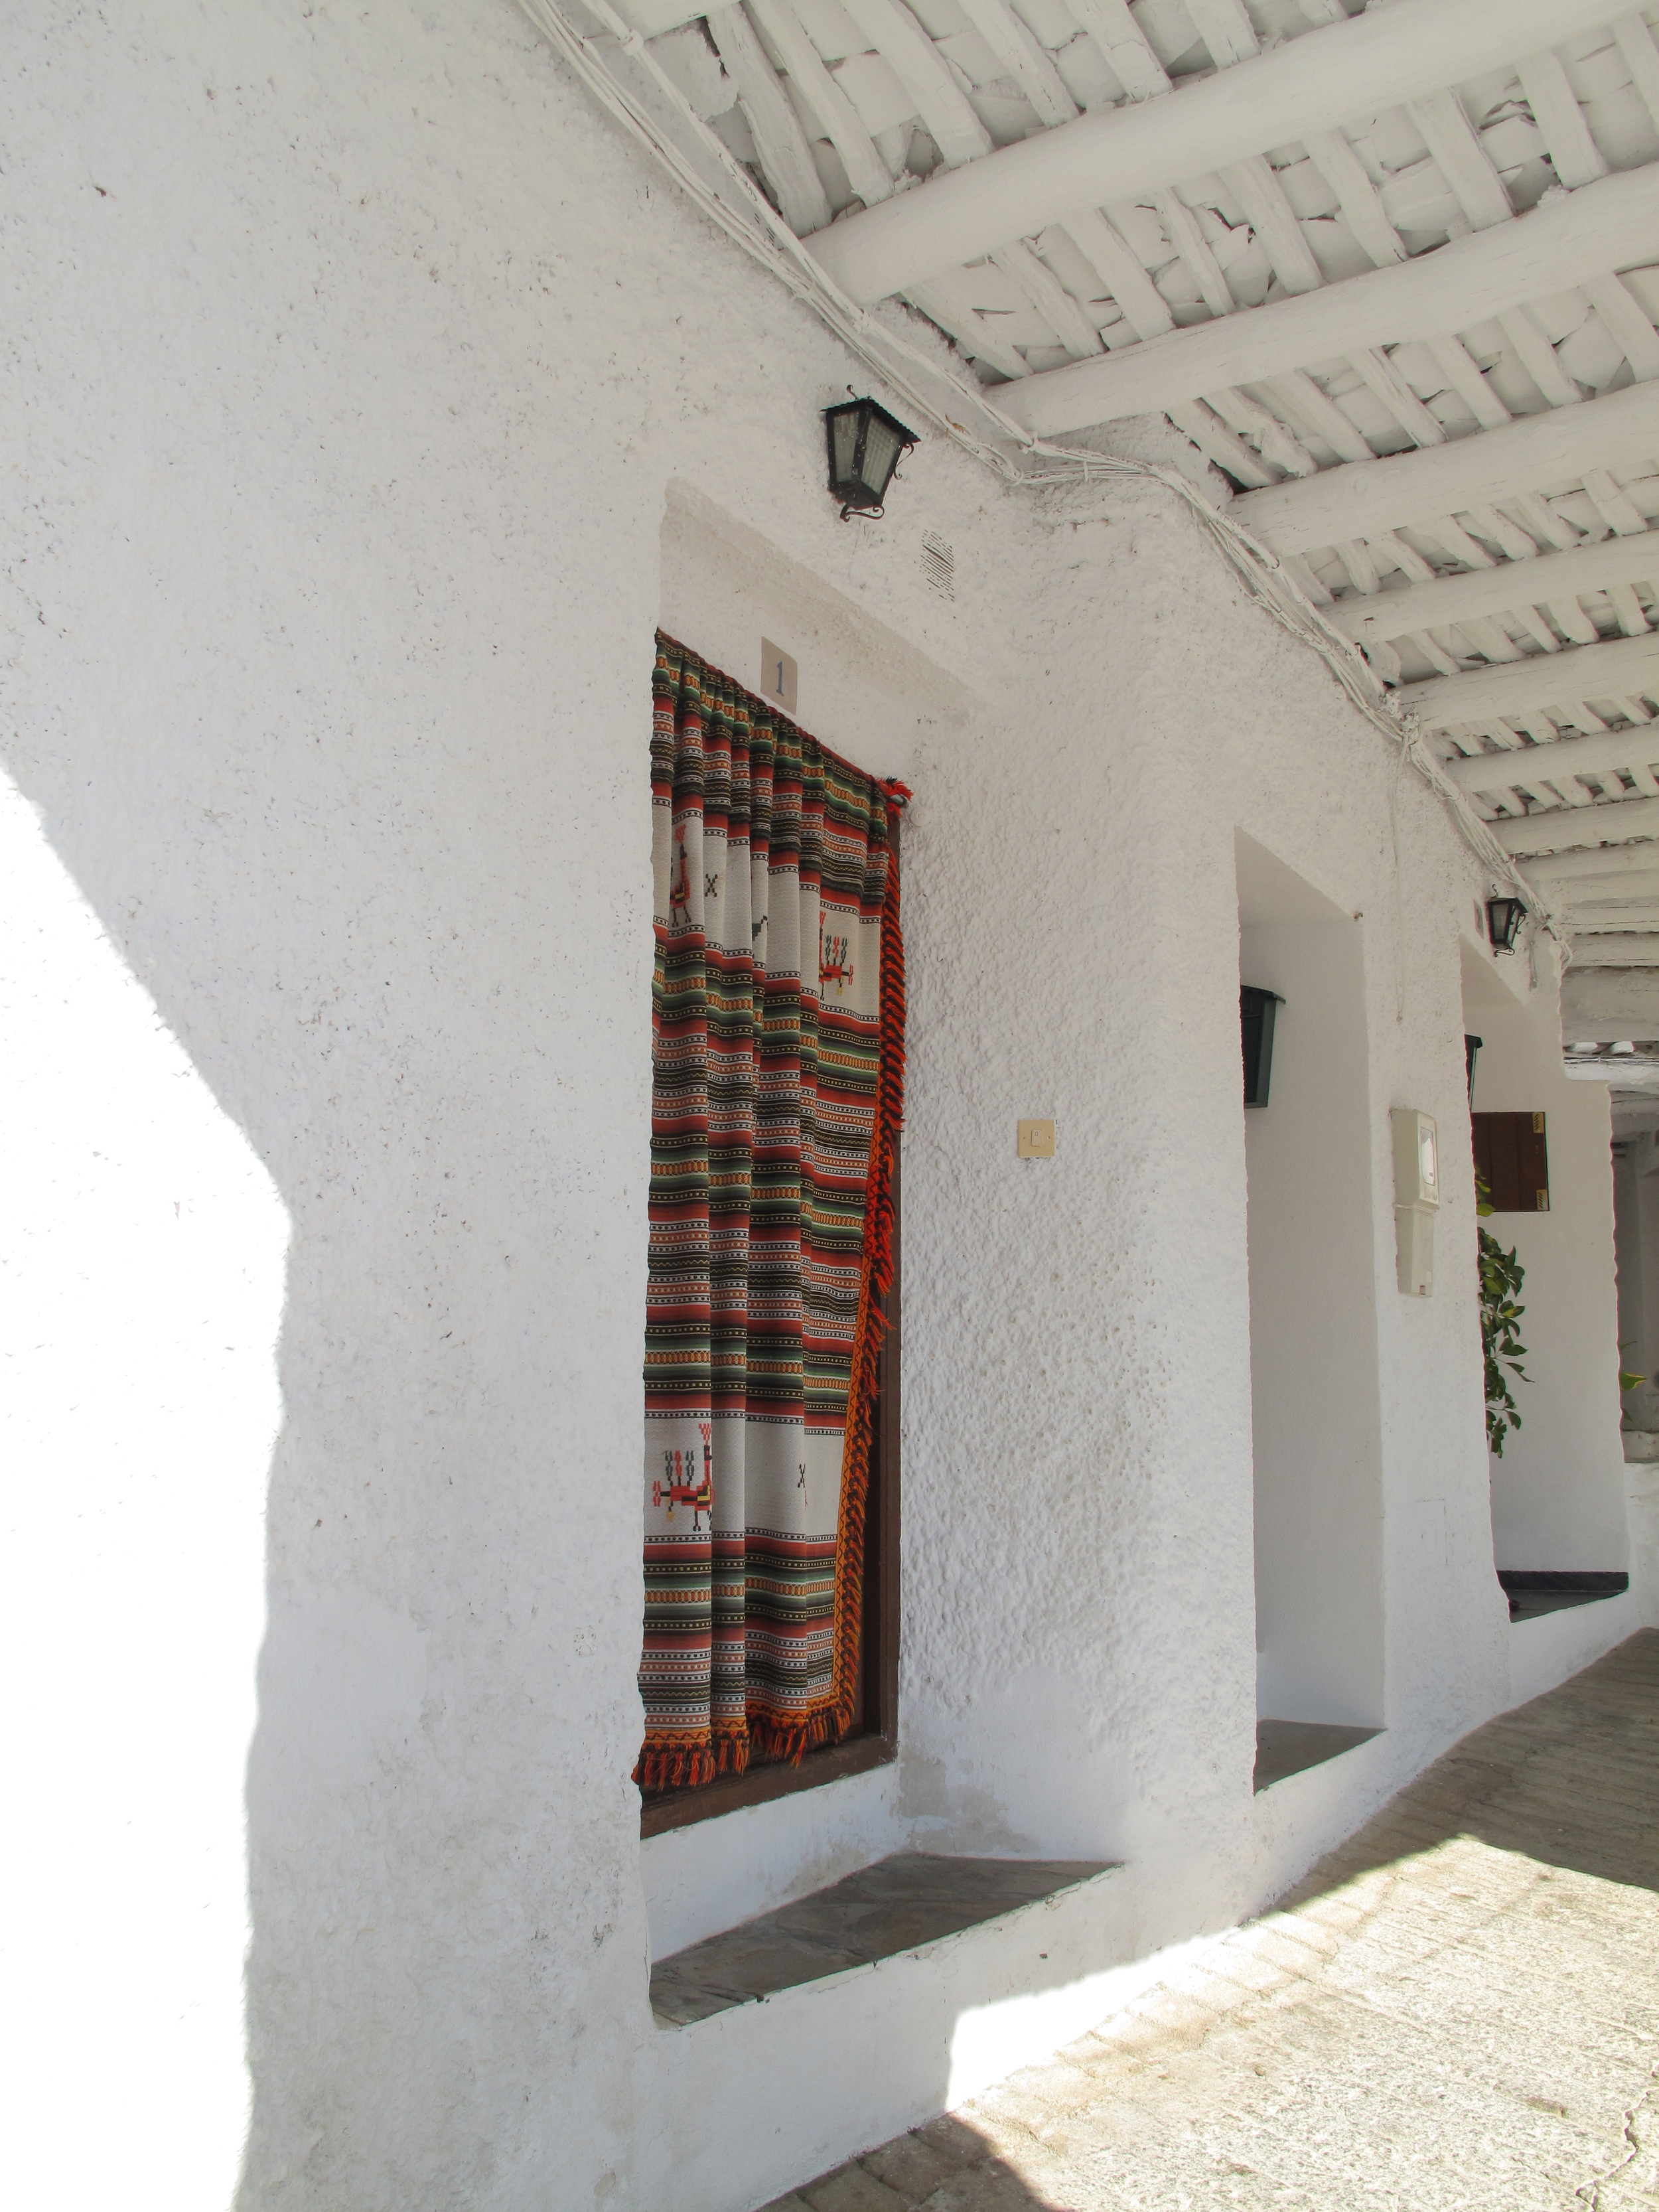 carpet door hanging and white walls and siesta time in the Spanish mountains